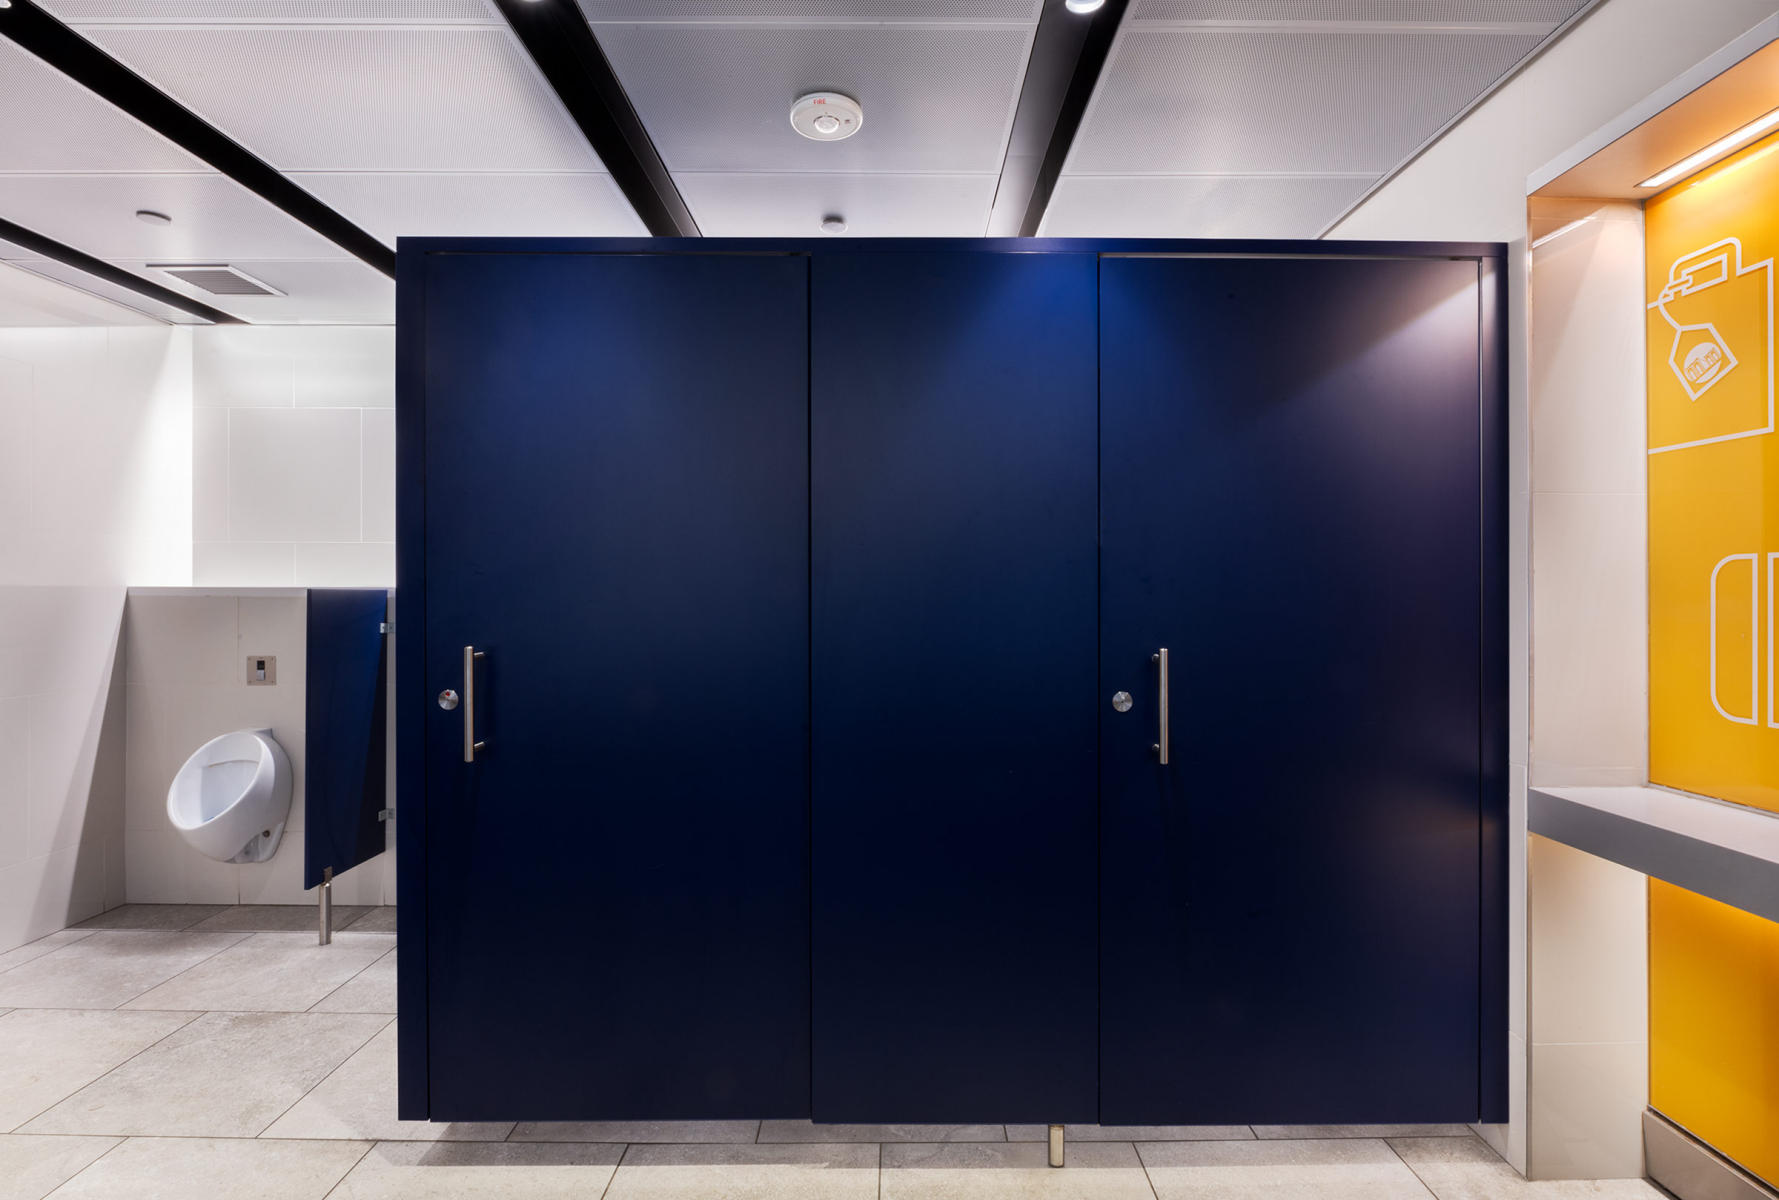 JFK Jamaica Airtrain Station - restroom interior. : Port Authority NYNJ : New York NY Architectural Photographer | Interior and Exterior